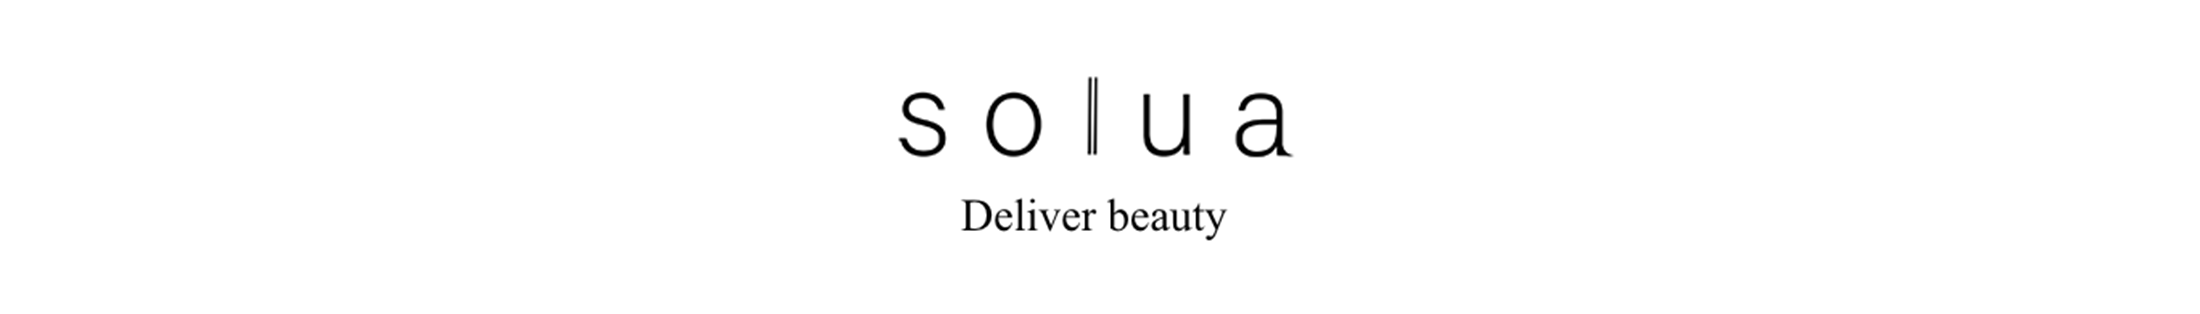 solua Deliver beauty